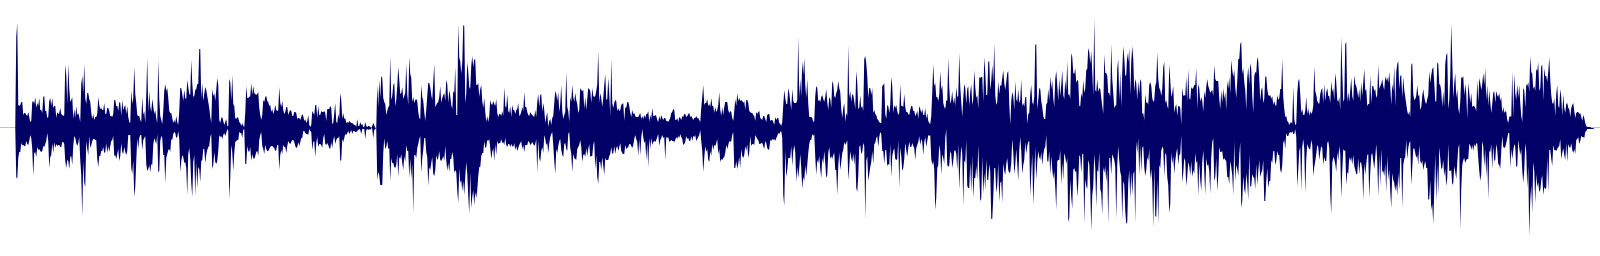 waveform of track #128710